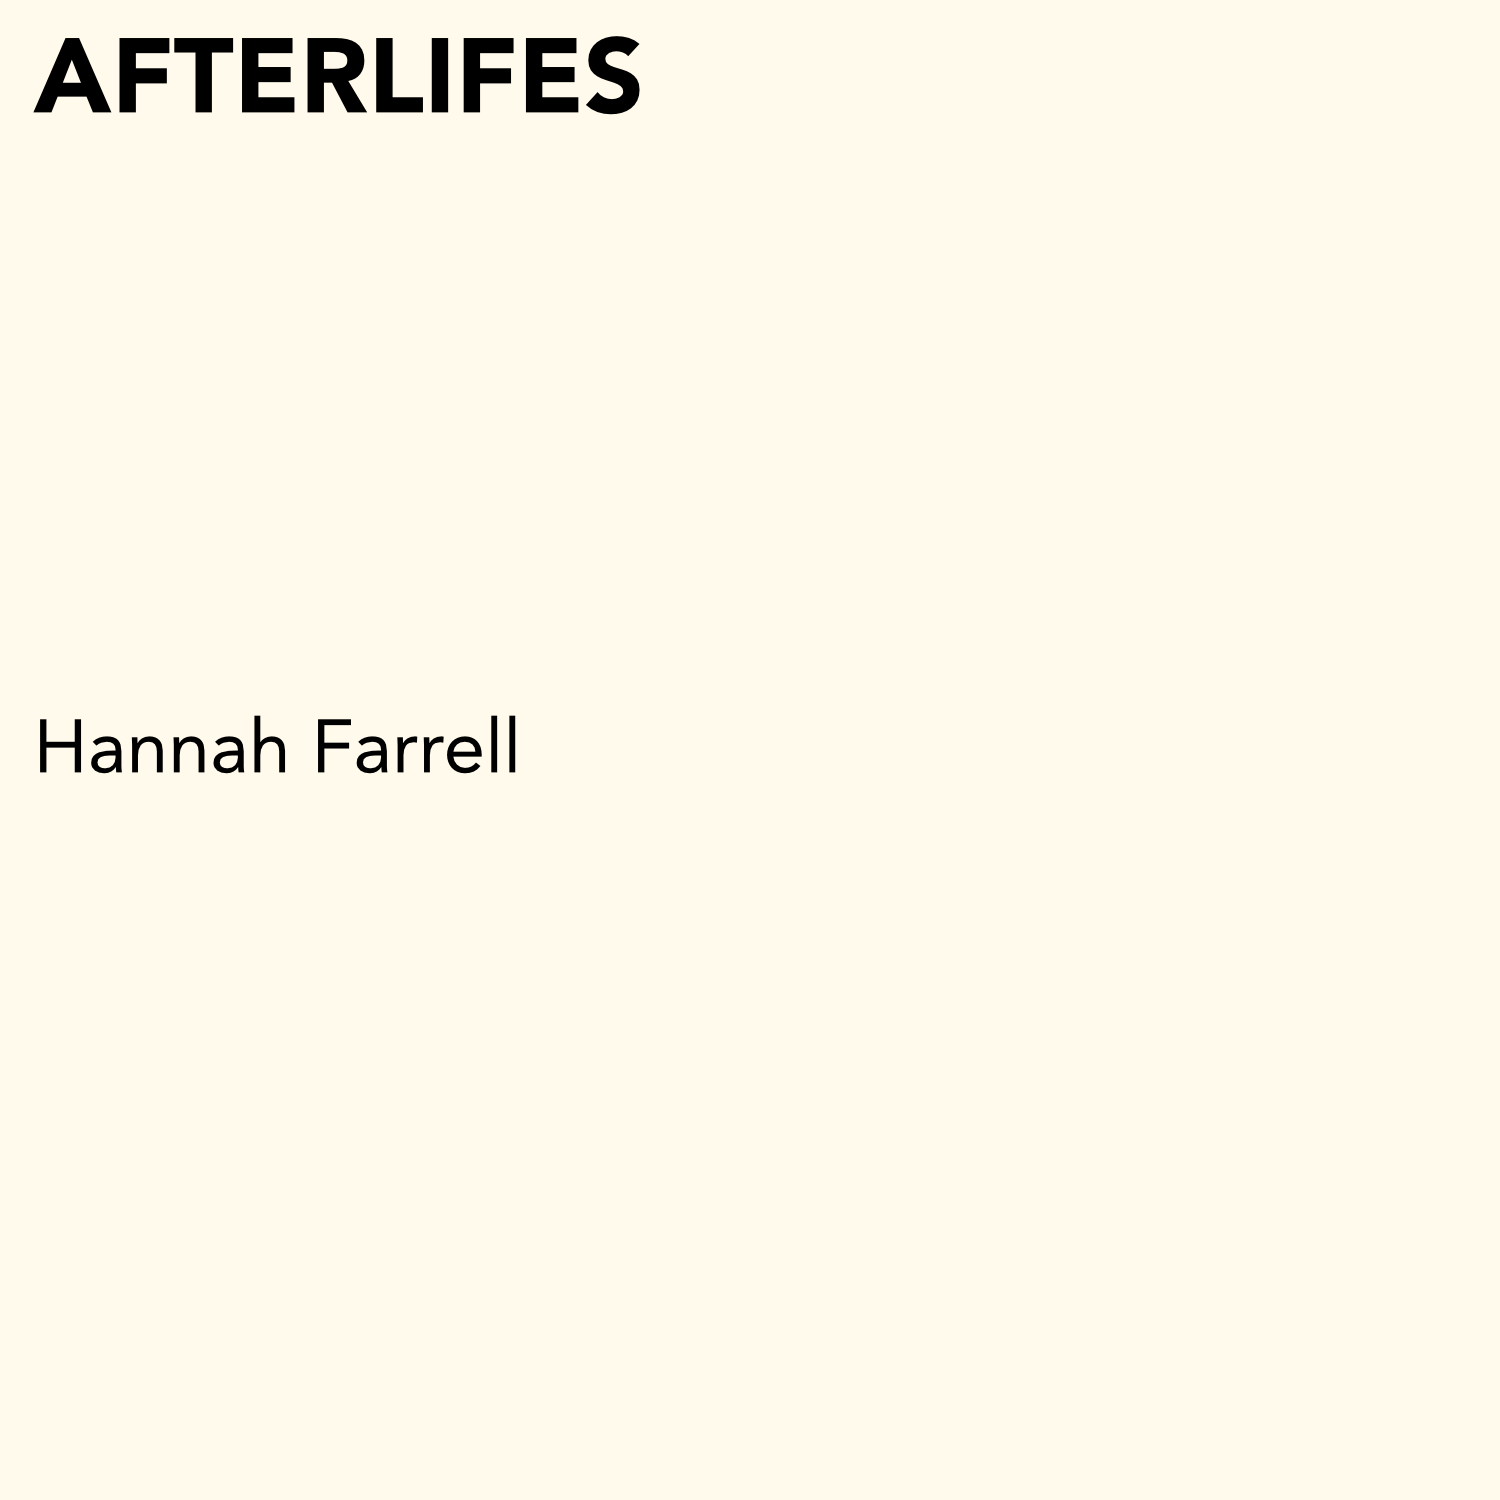 Hannah Farrell icon afterlifes.jpg